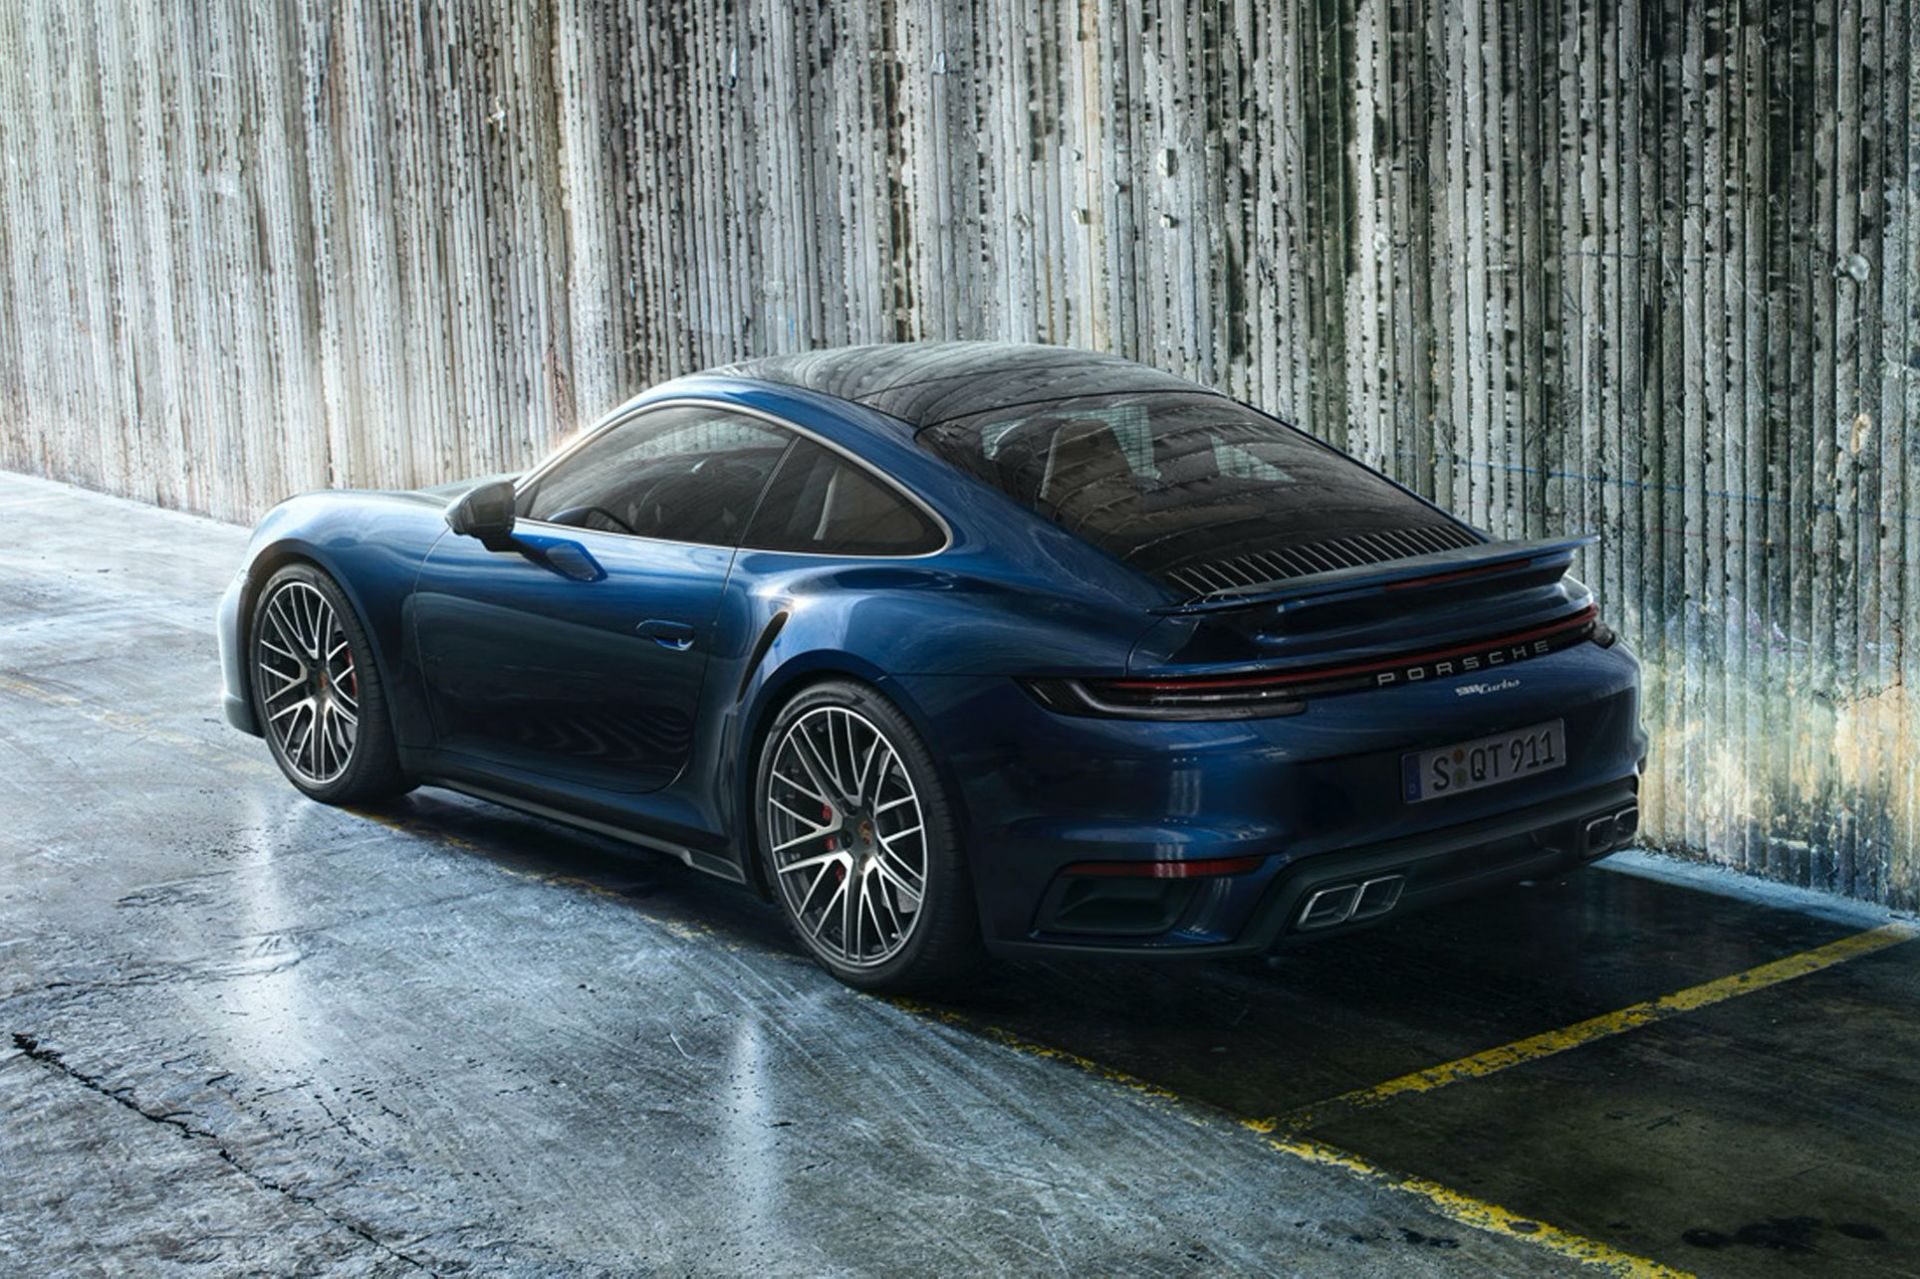 2021 Porsche 911 Turbo Breaks Cover With 572 Hp 0 60 Time Of 2 7 Seconds